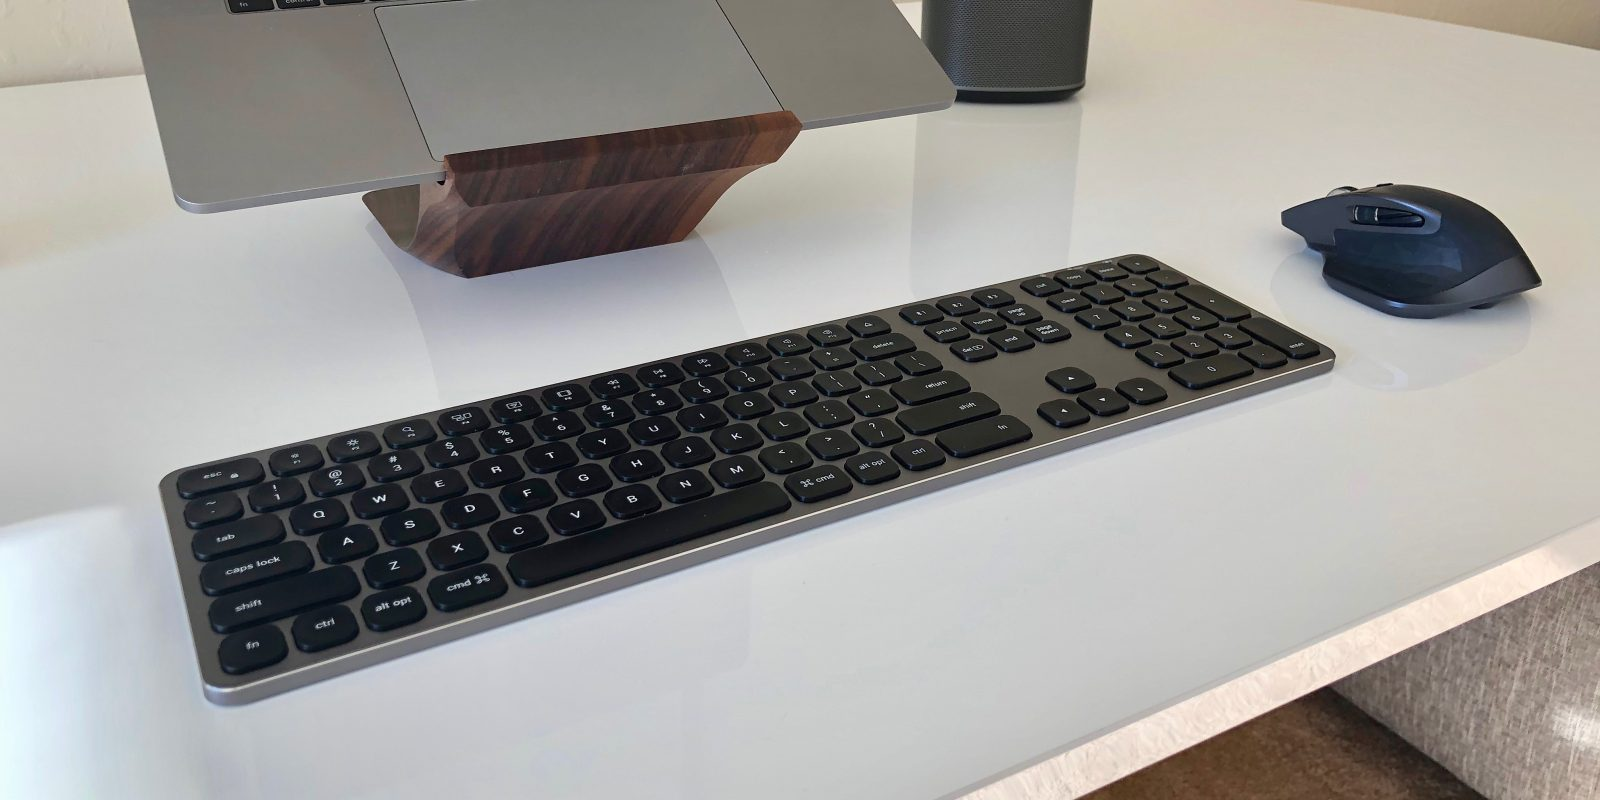 Review: Satechi's Aluminum Keyboard is a great alternative to Apple's more expensive space gray option